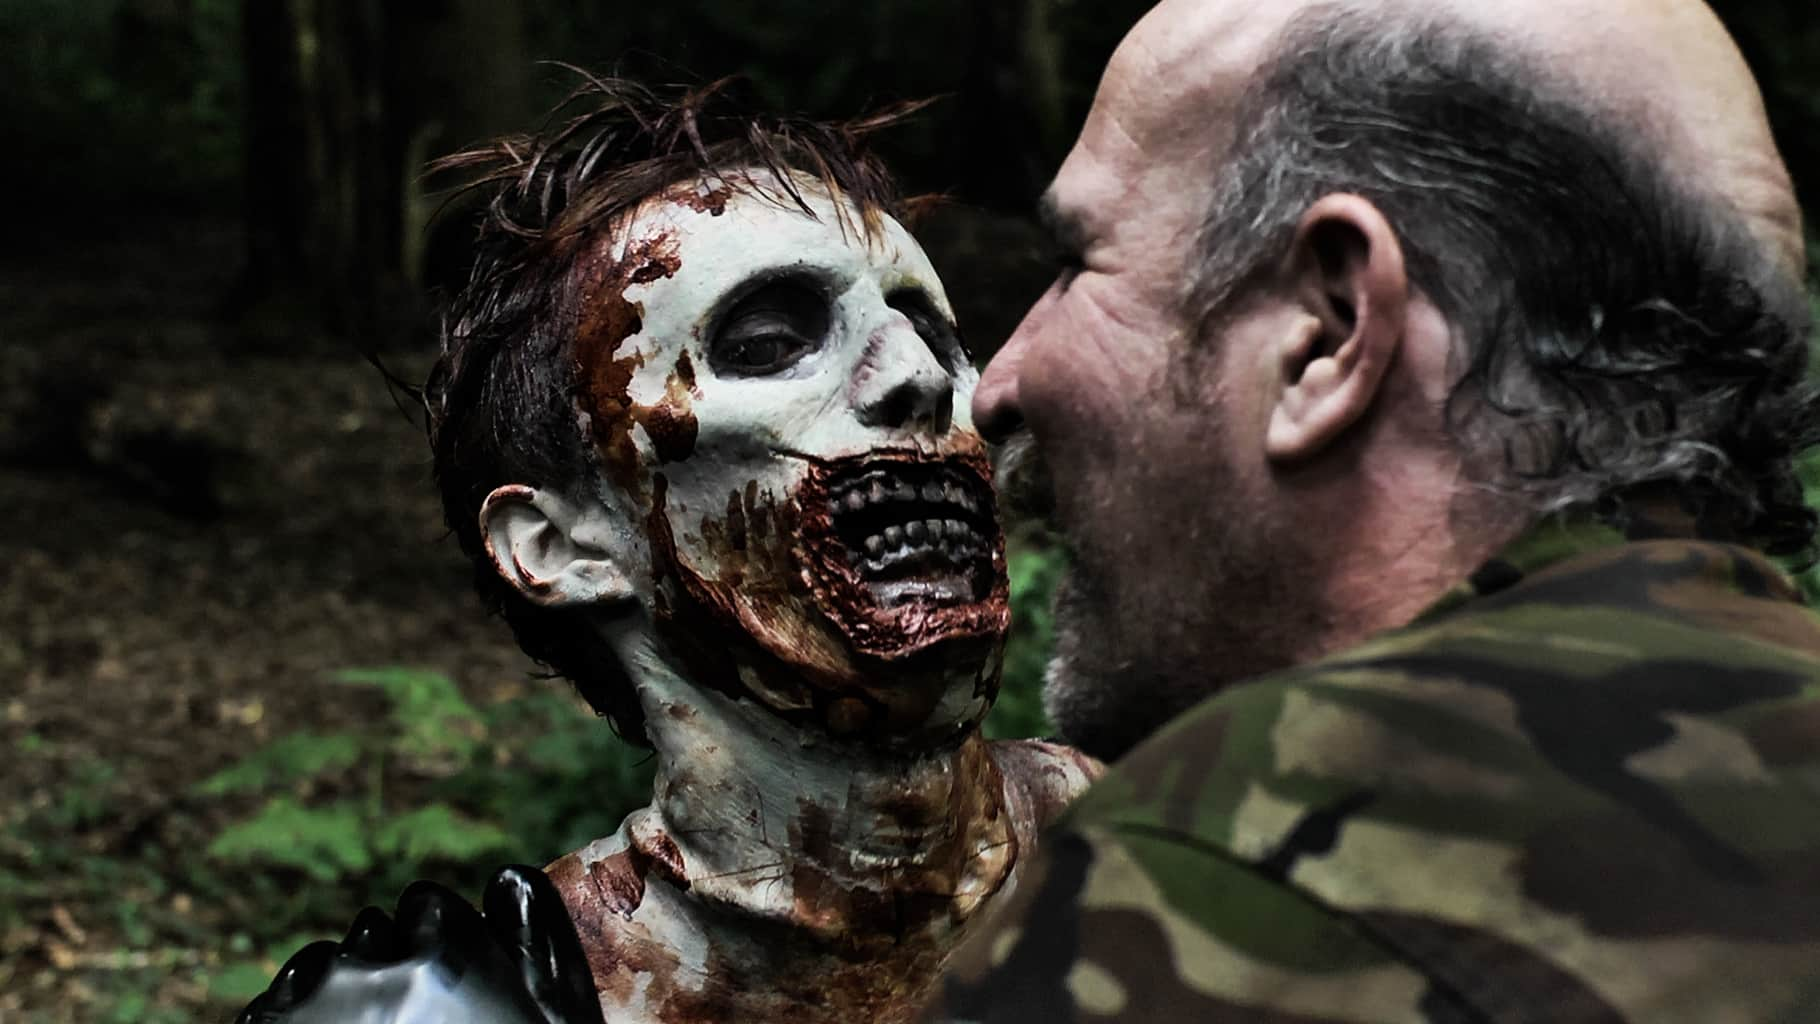 film reviews | movies | features | BRWC DVD Review: Zombie Resurrection (2013)